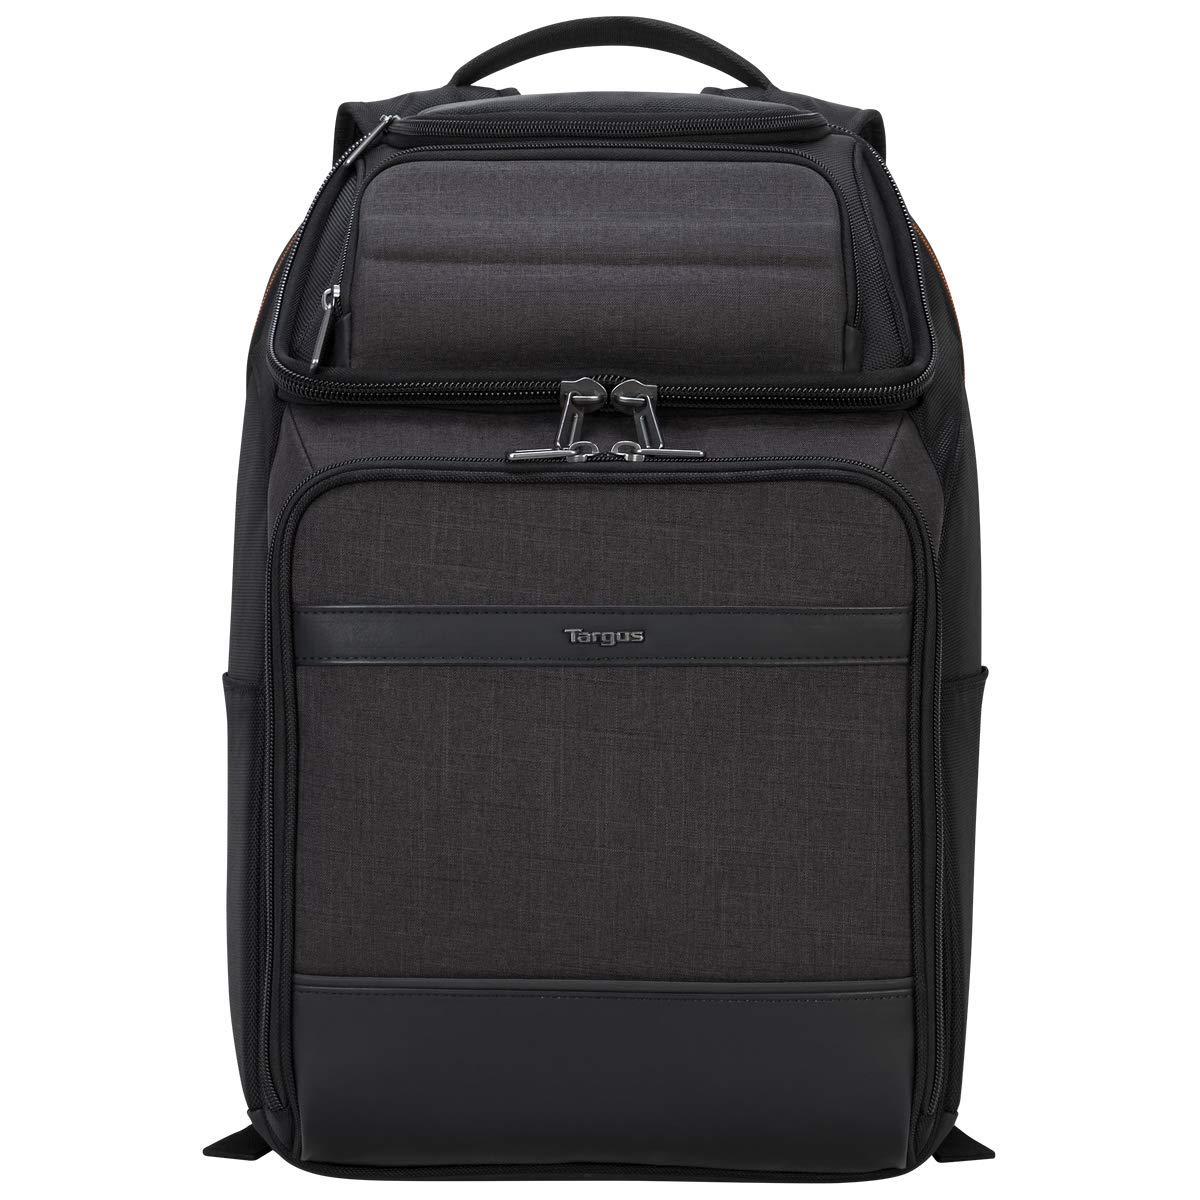 Targus CitySmart EVA Pro Travel Business Commuter and Checkpoint-Friendly Backpack with Protective Sleeve for 15.6-Inch Laptop, Gray (TSB895)